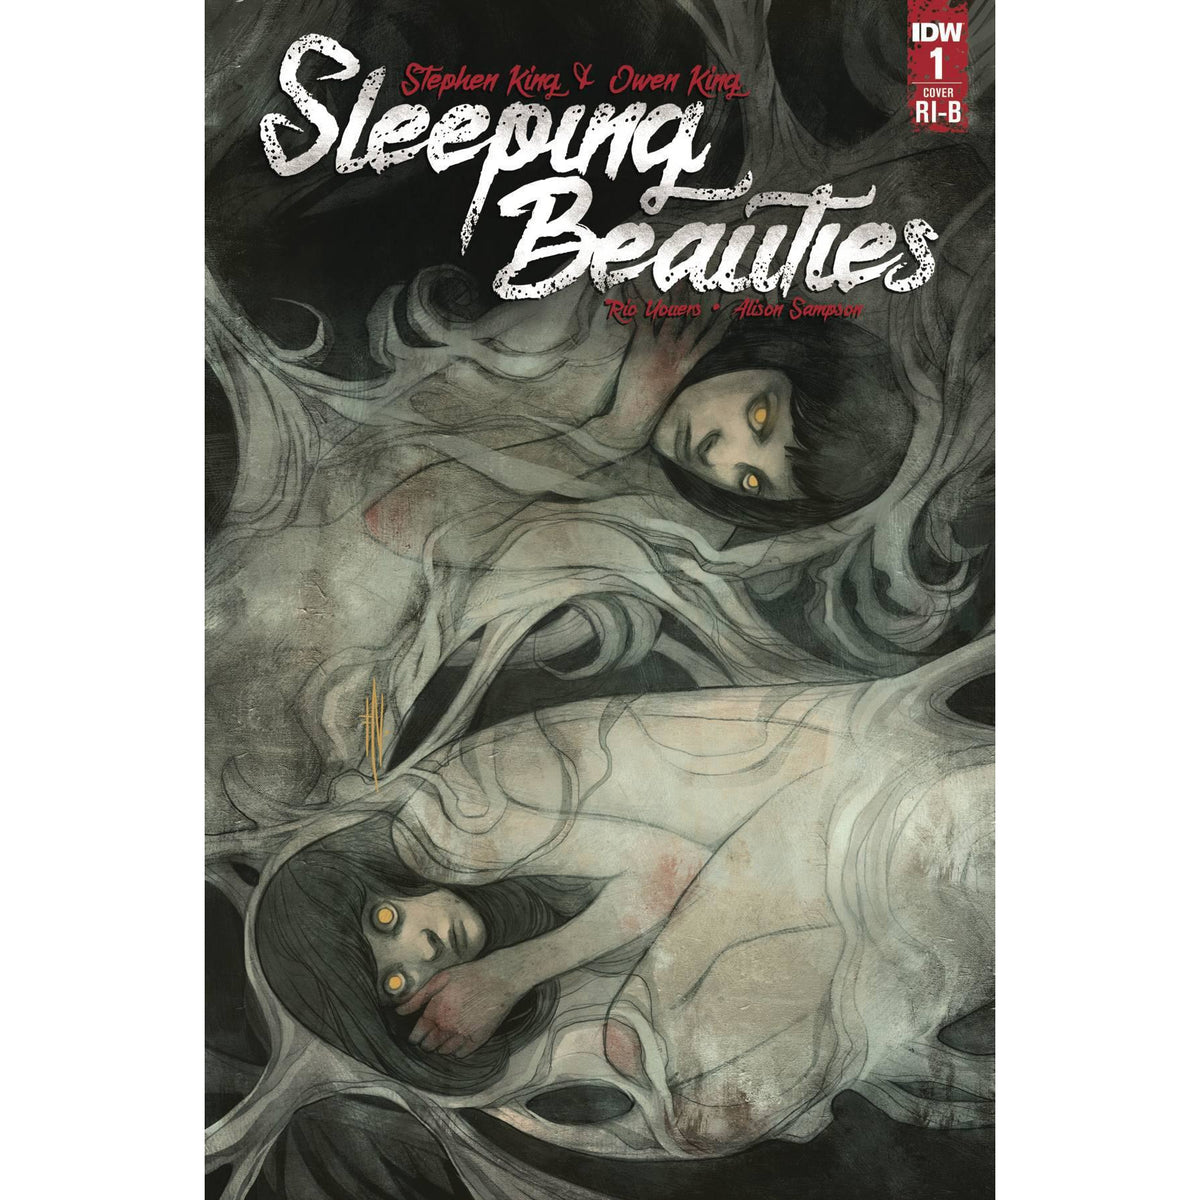 SLEEPING BEAUTIES #1 (OF 10) - 1:25 DIANA NANEVA COVER D - IDW COMICS